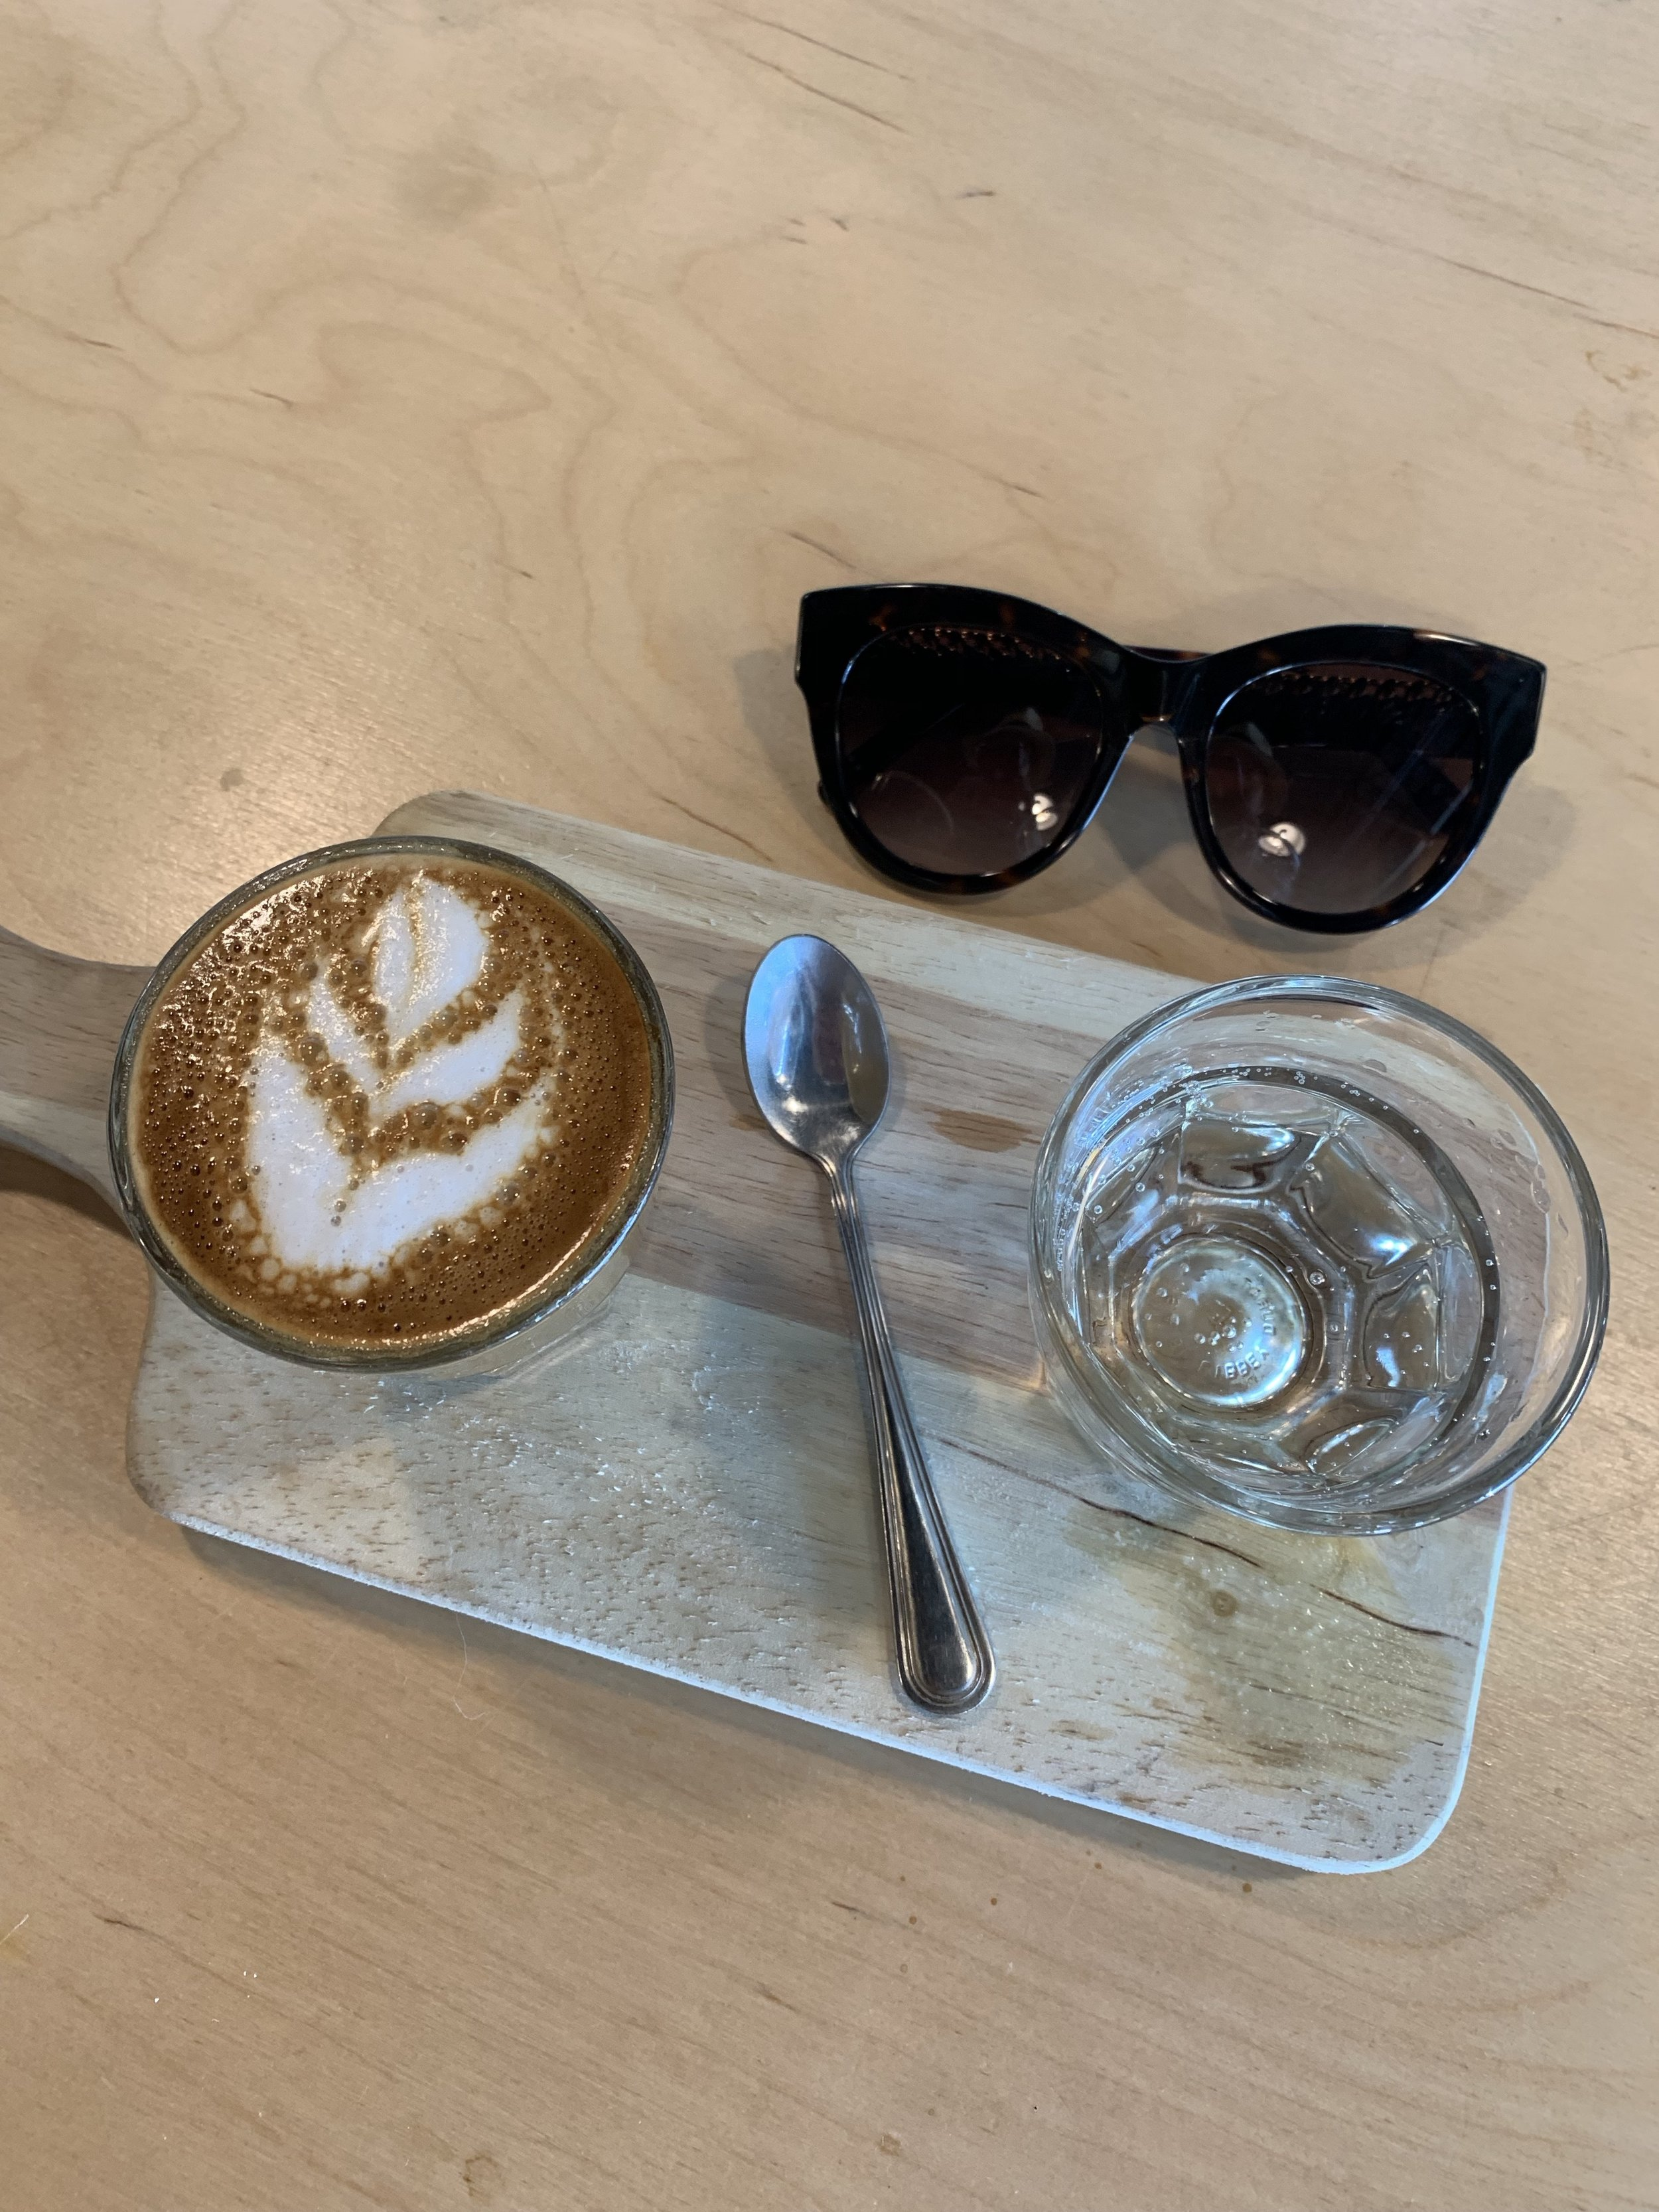 Piccolo Latte with coconut milk at the  Kookaburra Coffee Shop  in St Augustine Beach… they are serious about their coffee and serve with sparkling water to cleanse the palate!